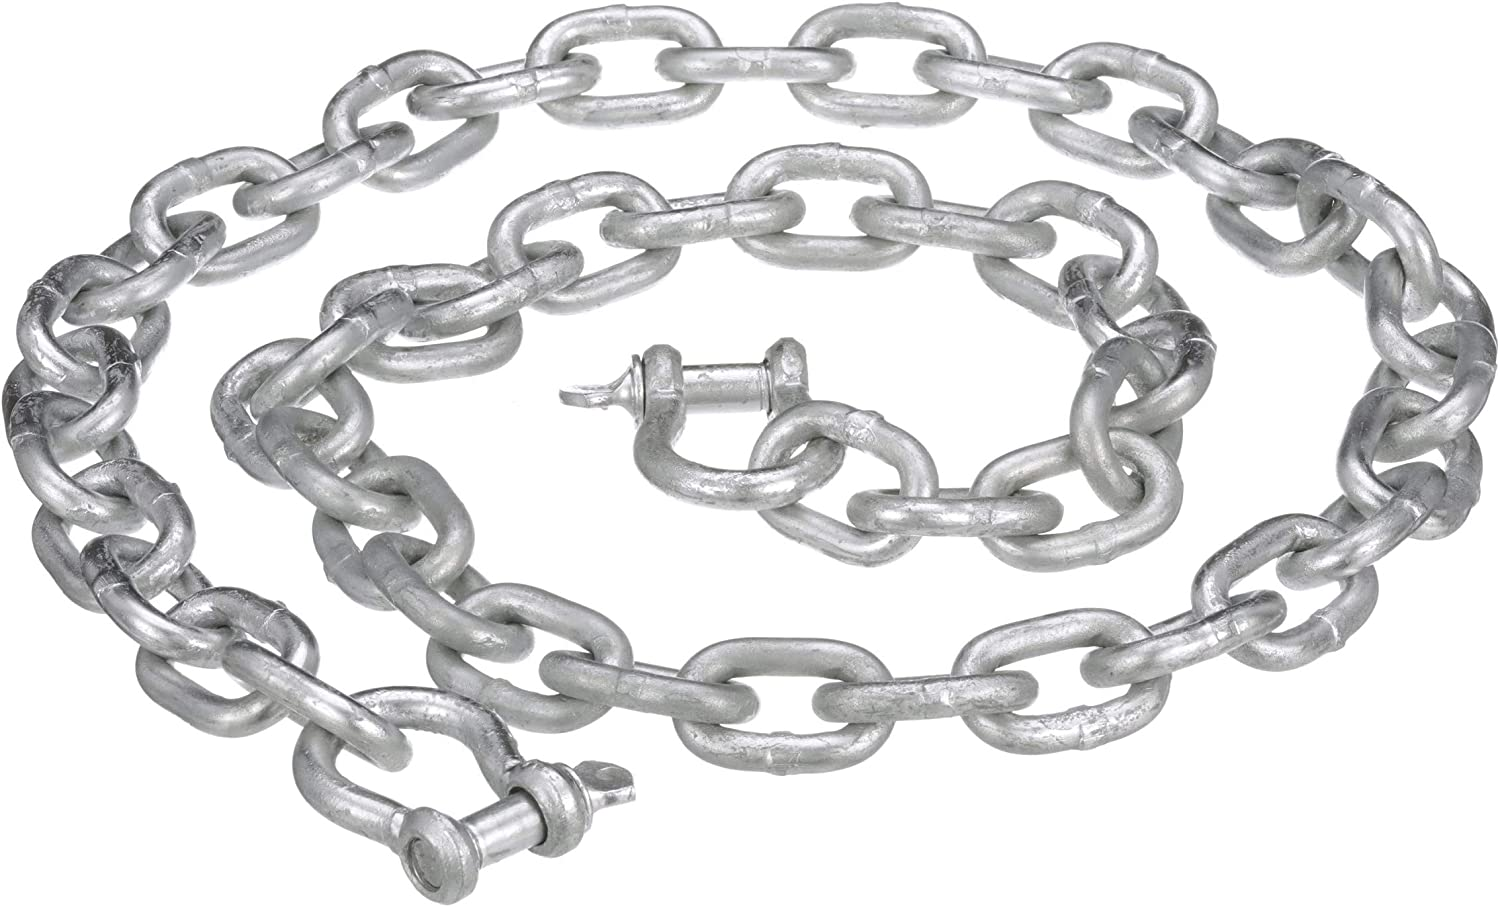 Extreme Max 3006.6572 BoatTector Galvanized Steel Anchor Chain 5//16 x 5